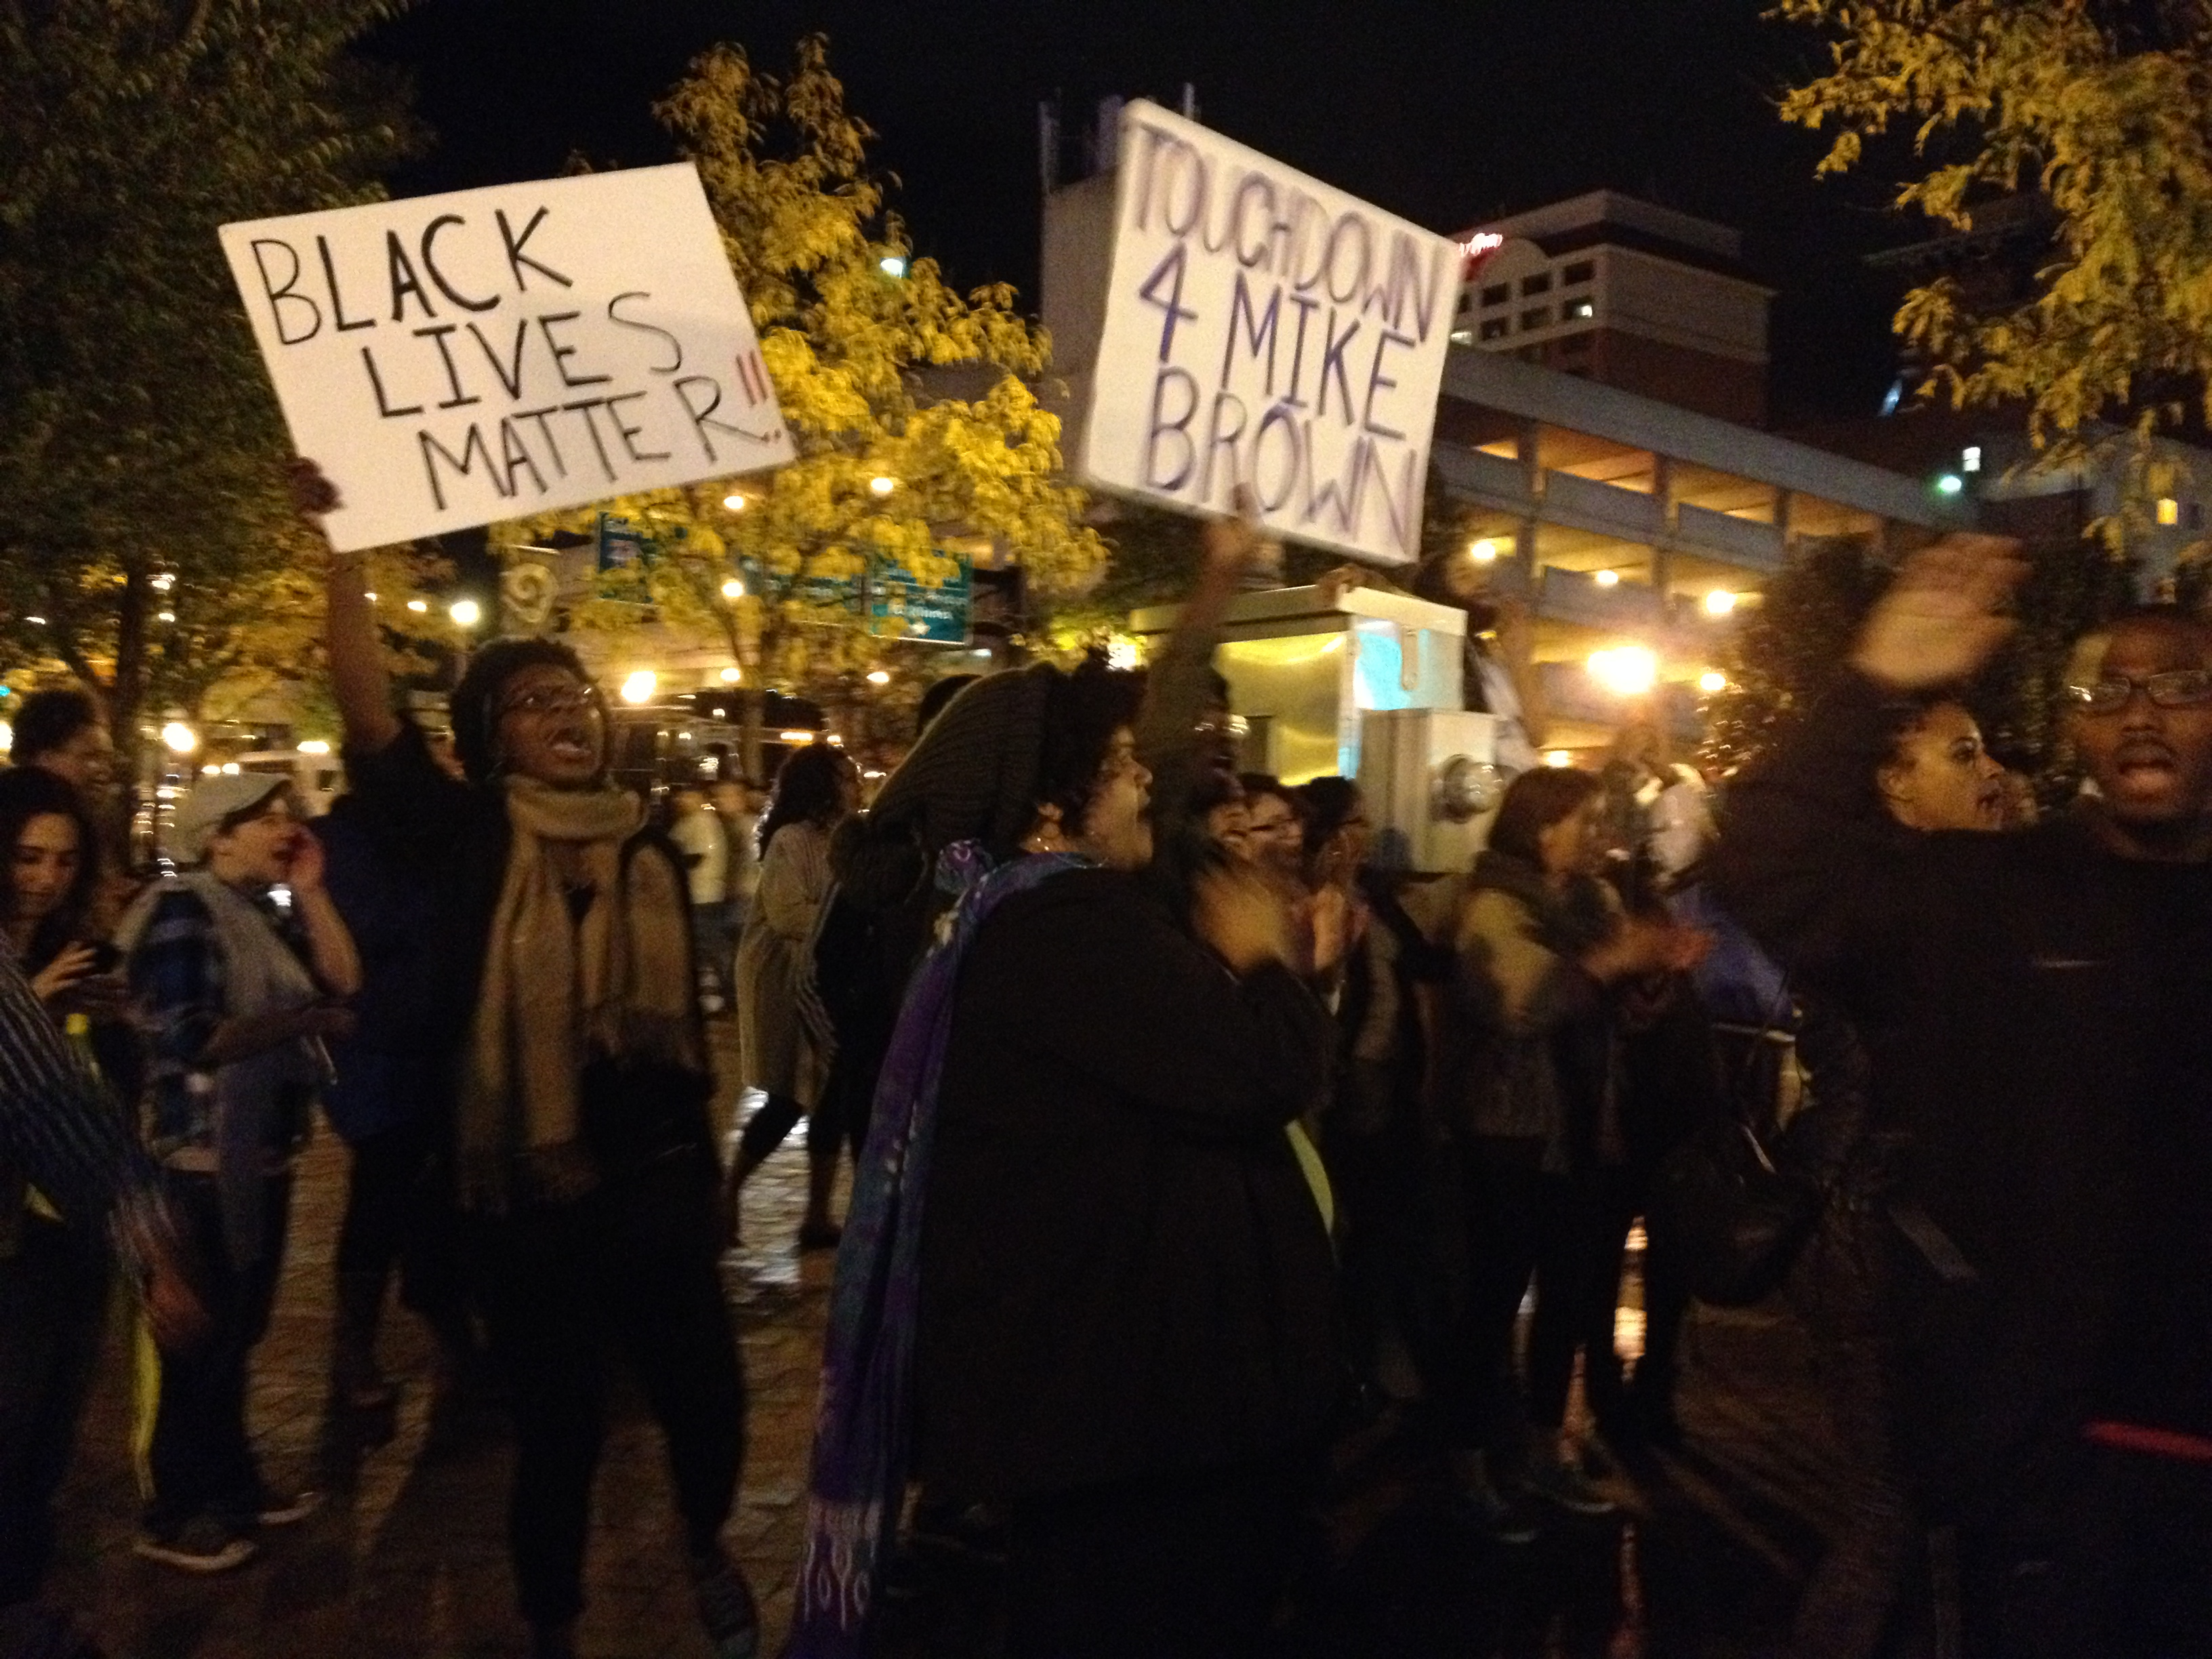 """Rams Game Protest at night with signs that read, """"BLACK LIVES MATTER and touch down for Mike Brown"""""""